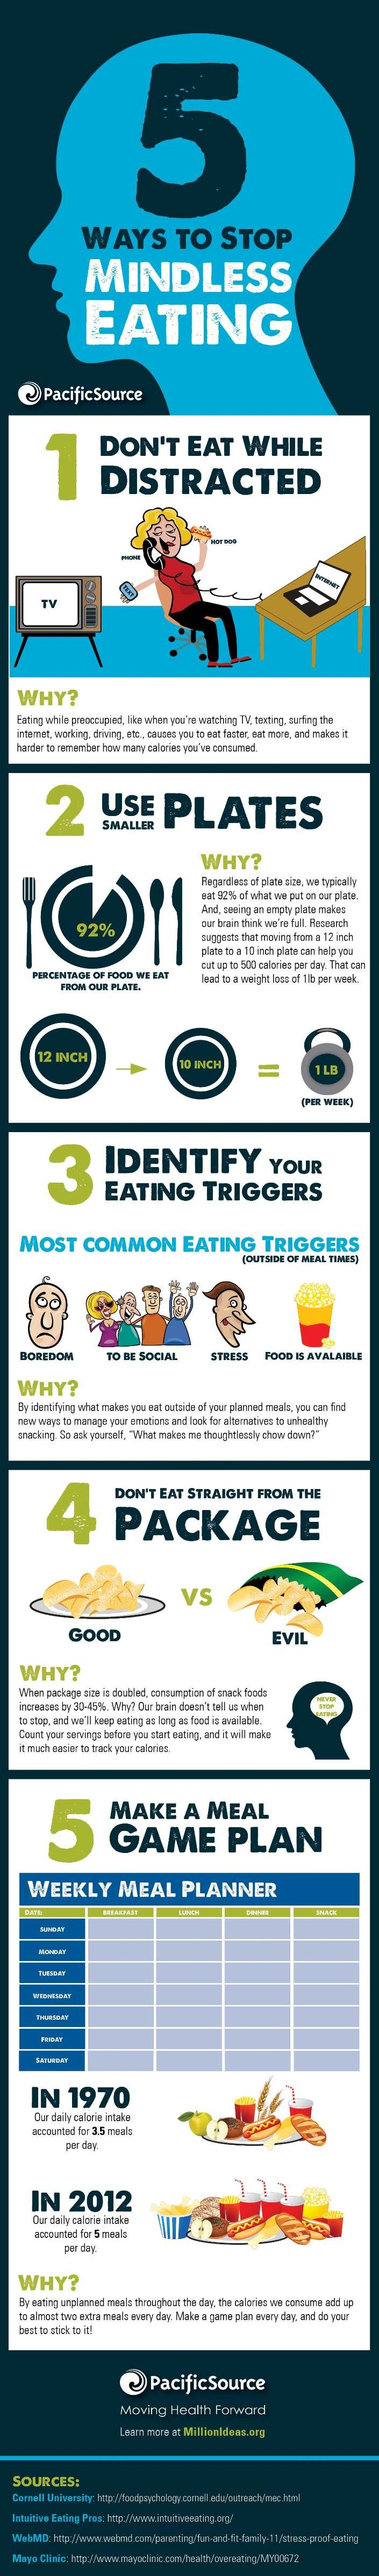 5 ways to stop mindless eating